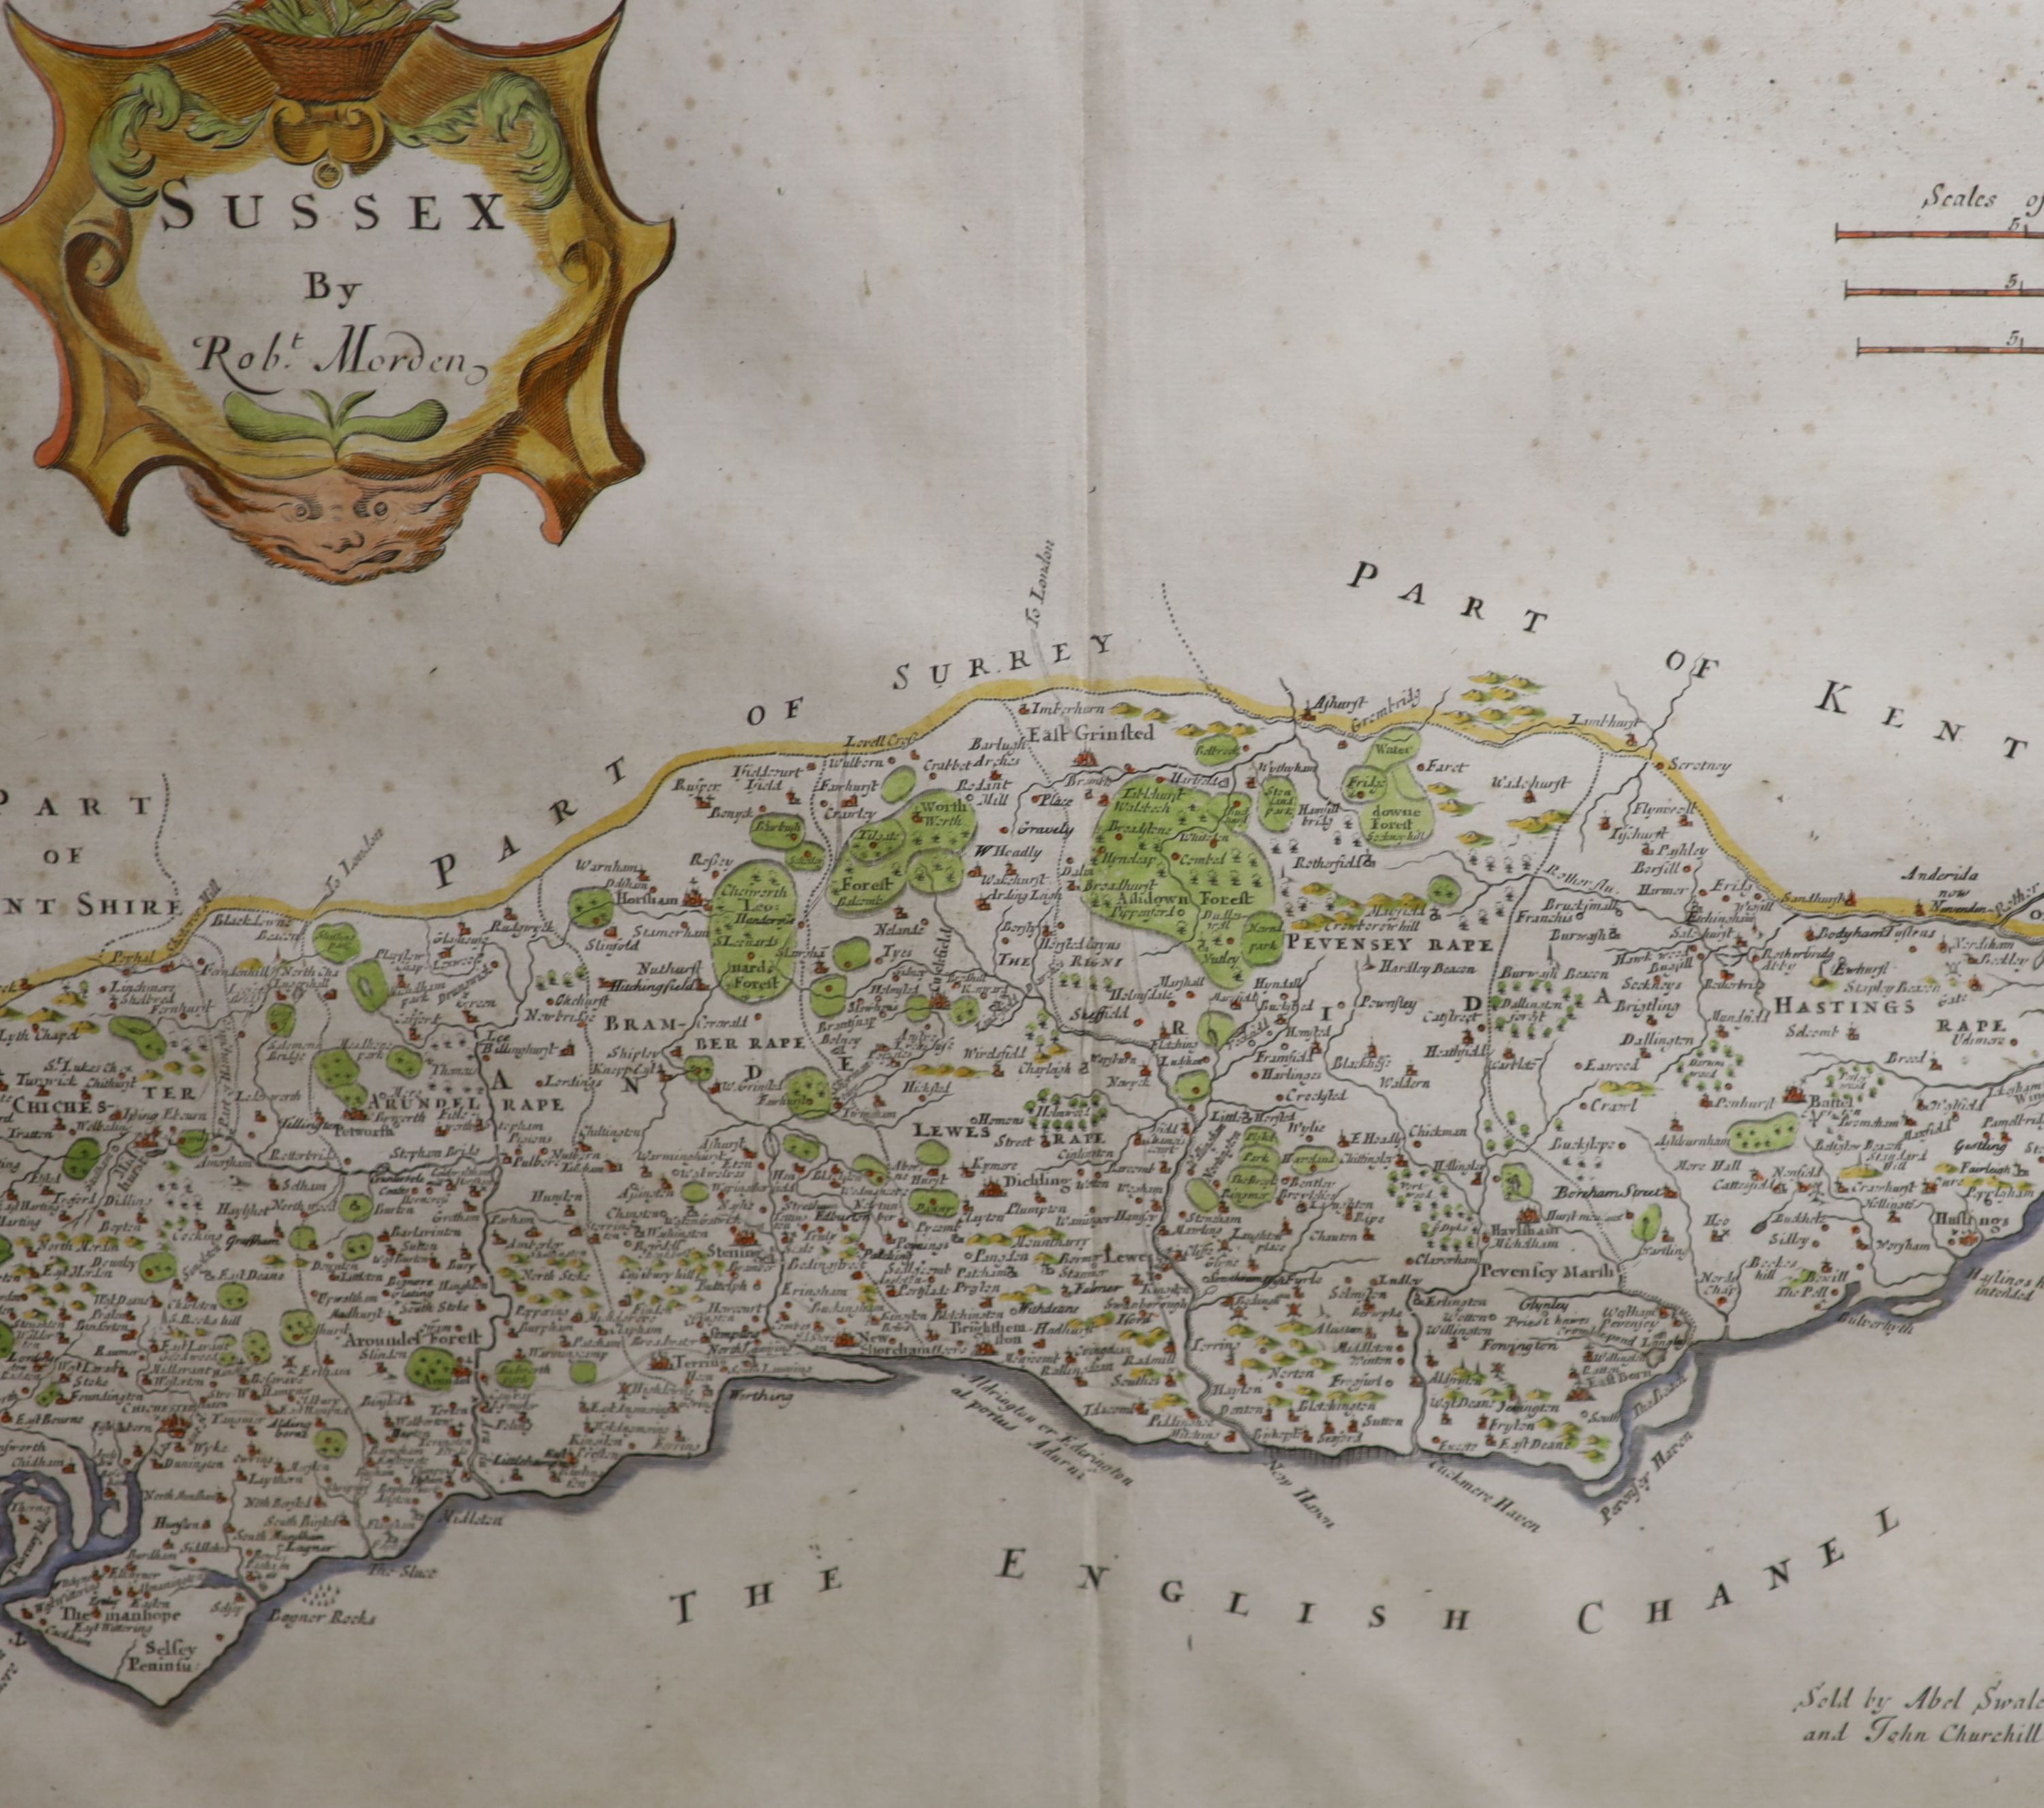 Robert Mordan, two coloured engravings, Maps of Sussex and Midlesex, together with two later - Image 2 of 5